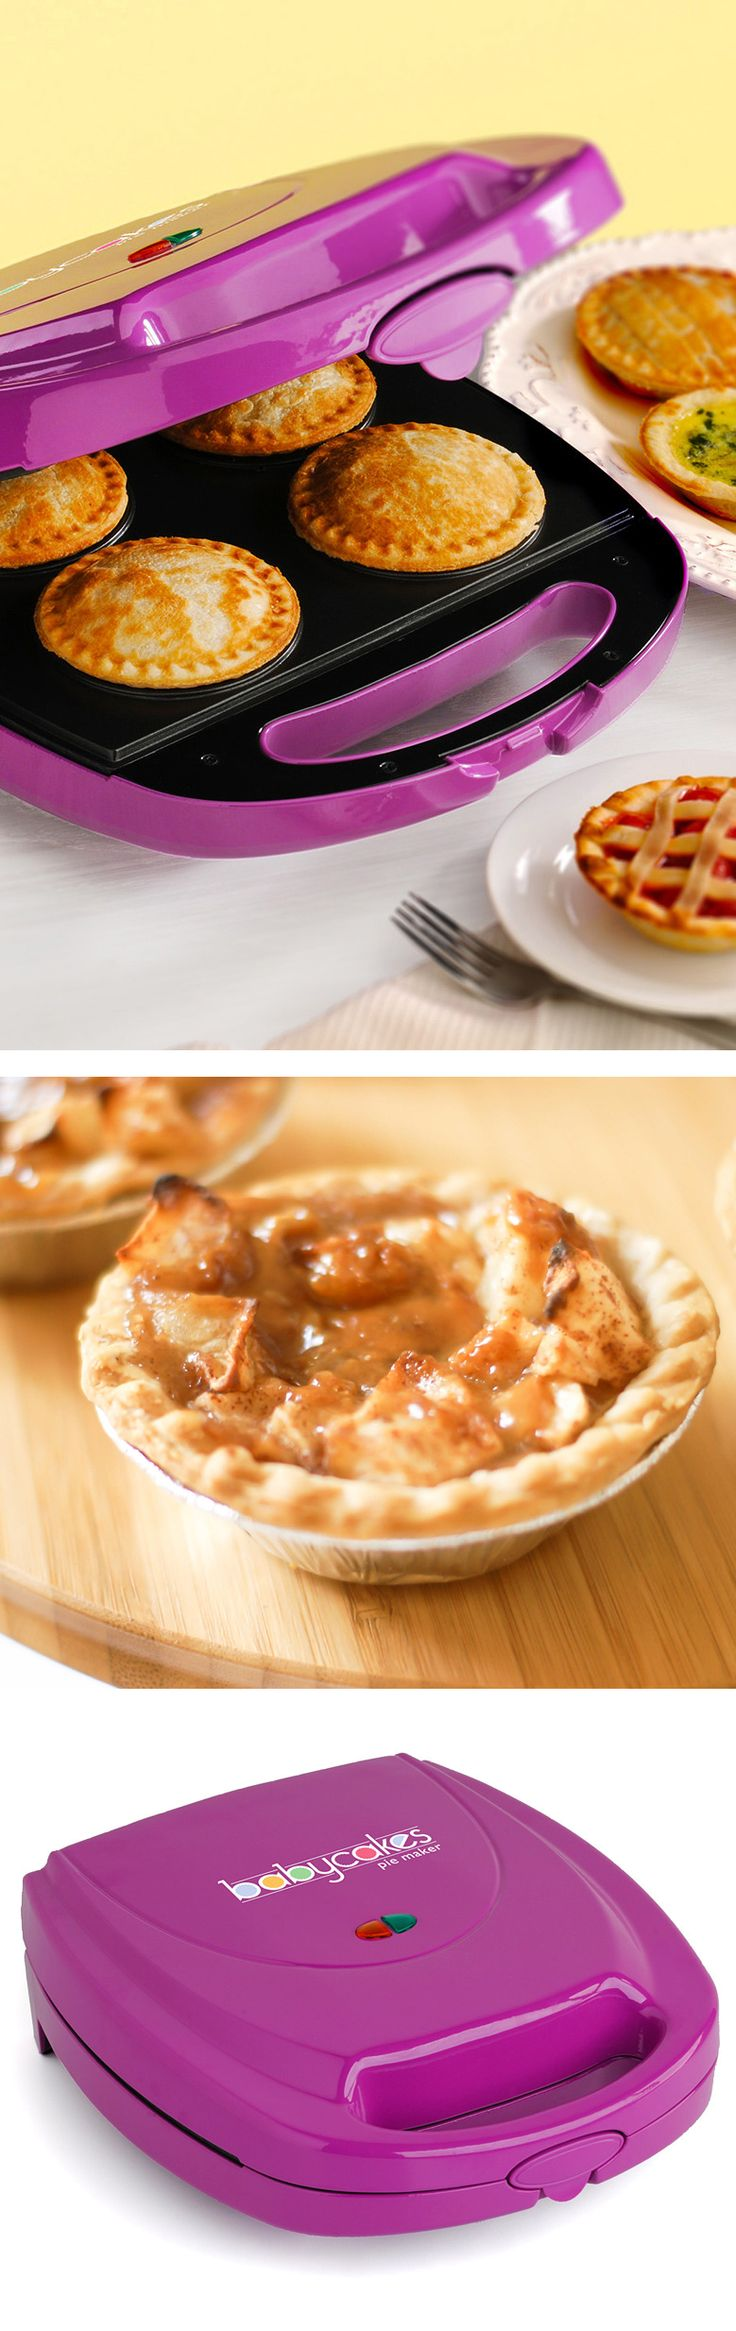 28 best images about kitchen equipment on pinterest for Best mini pie maker